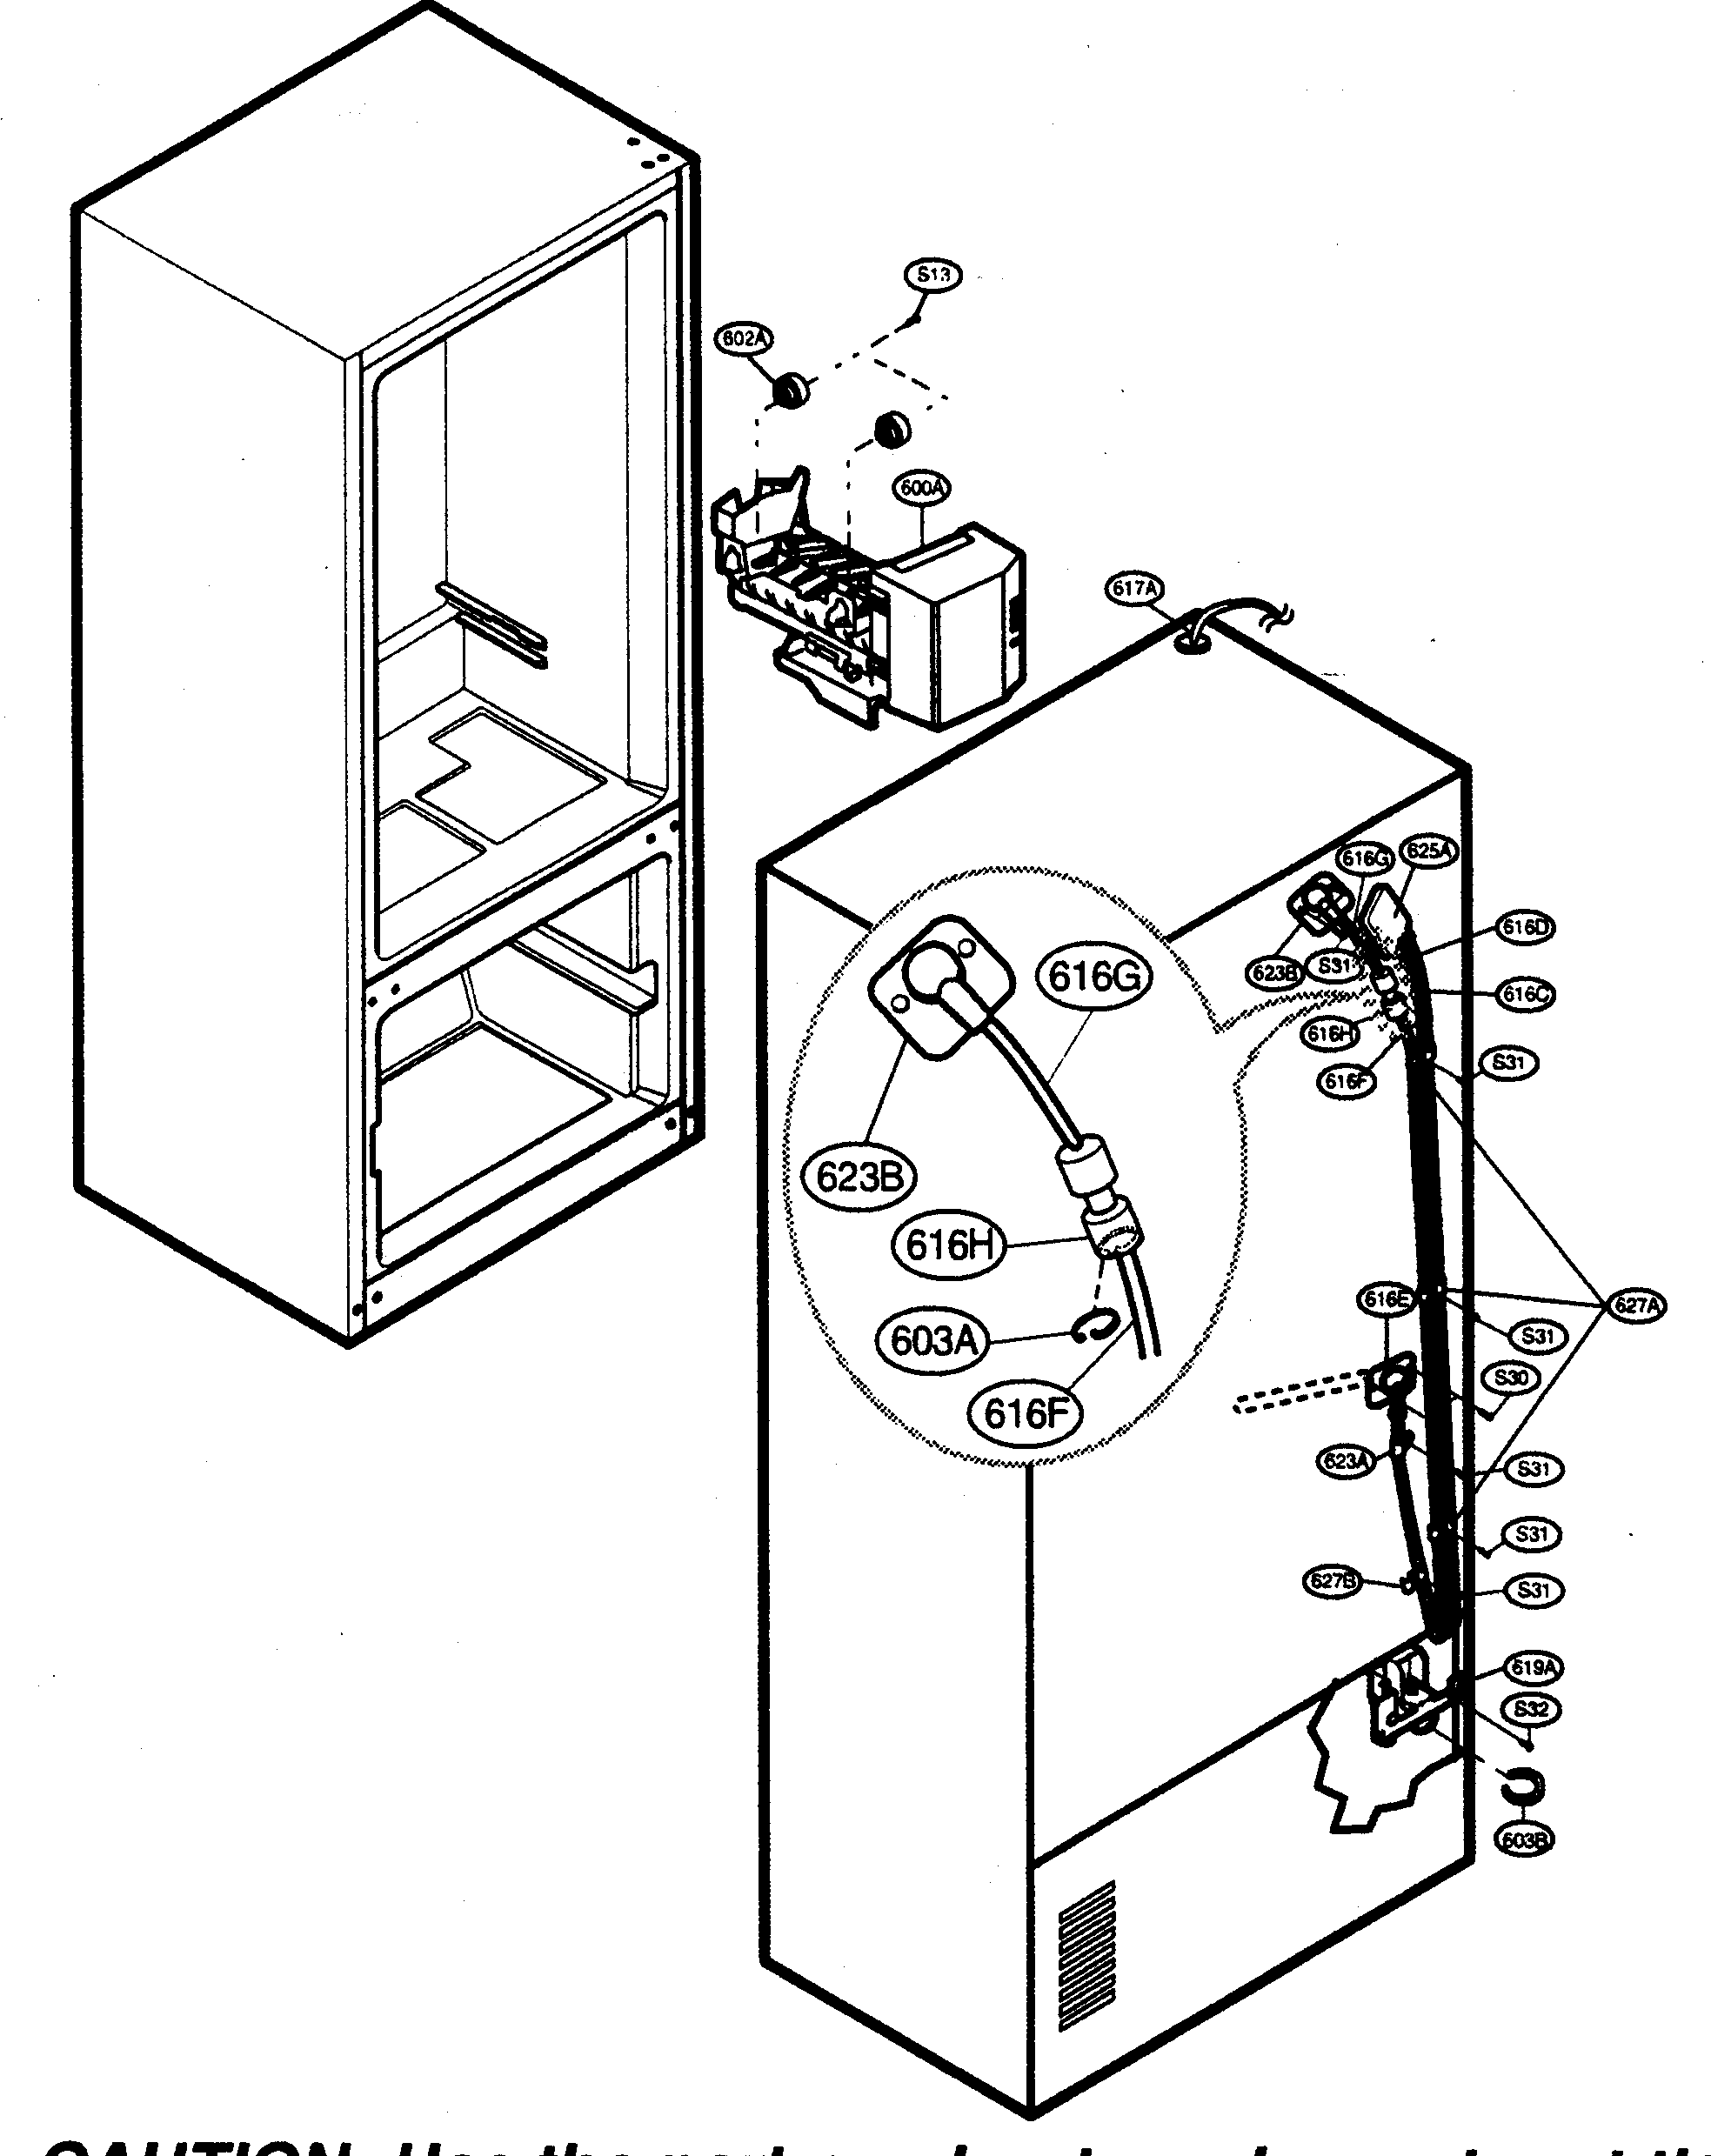 ICE MAKER PARTS Diagram & Parts List for Model 79575193401